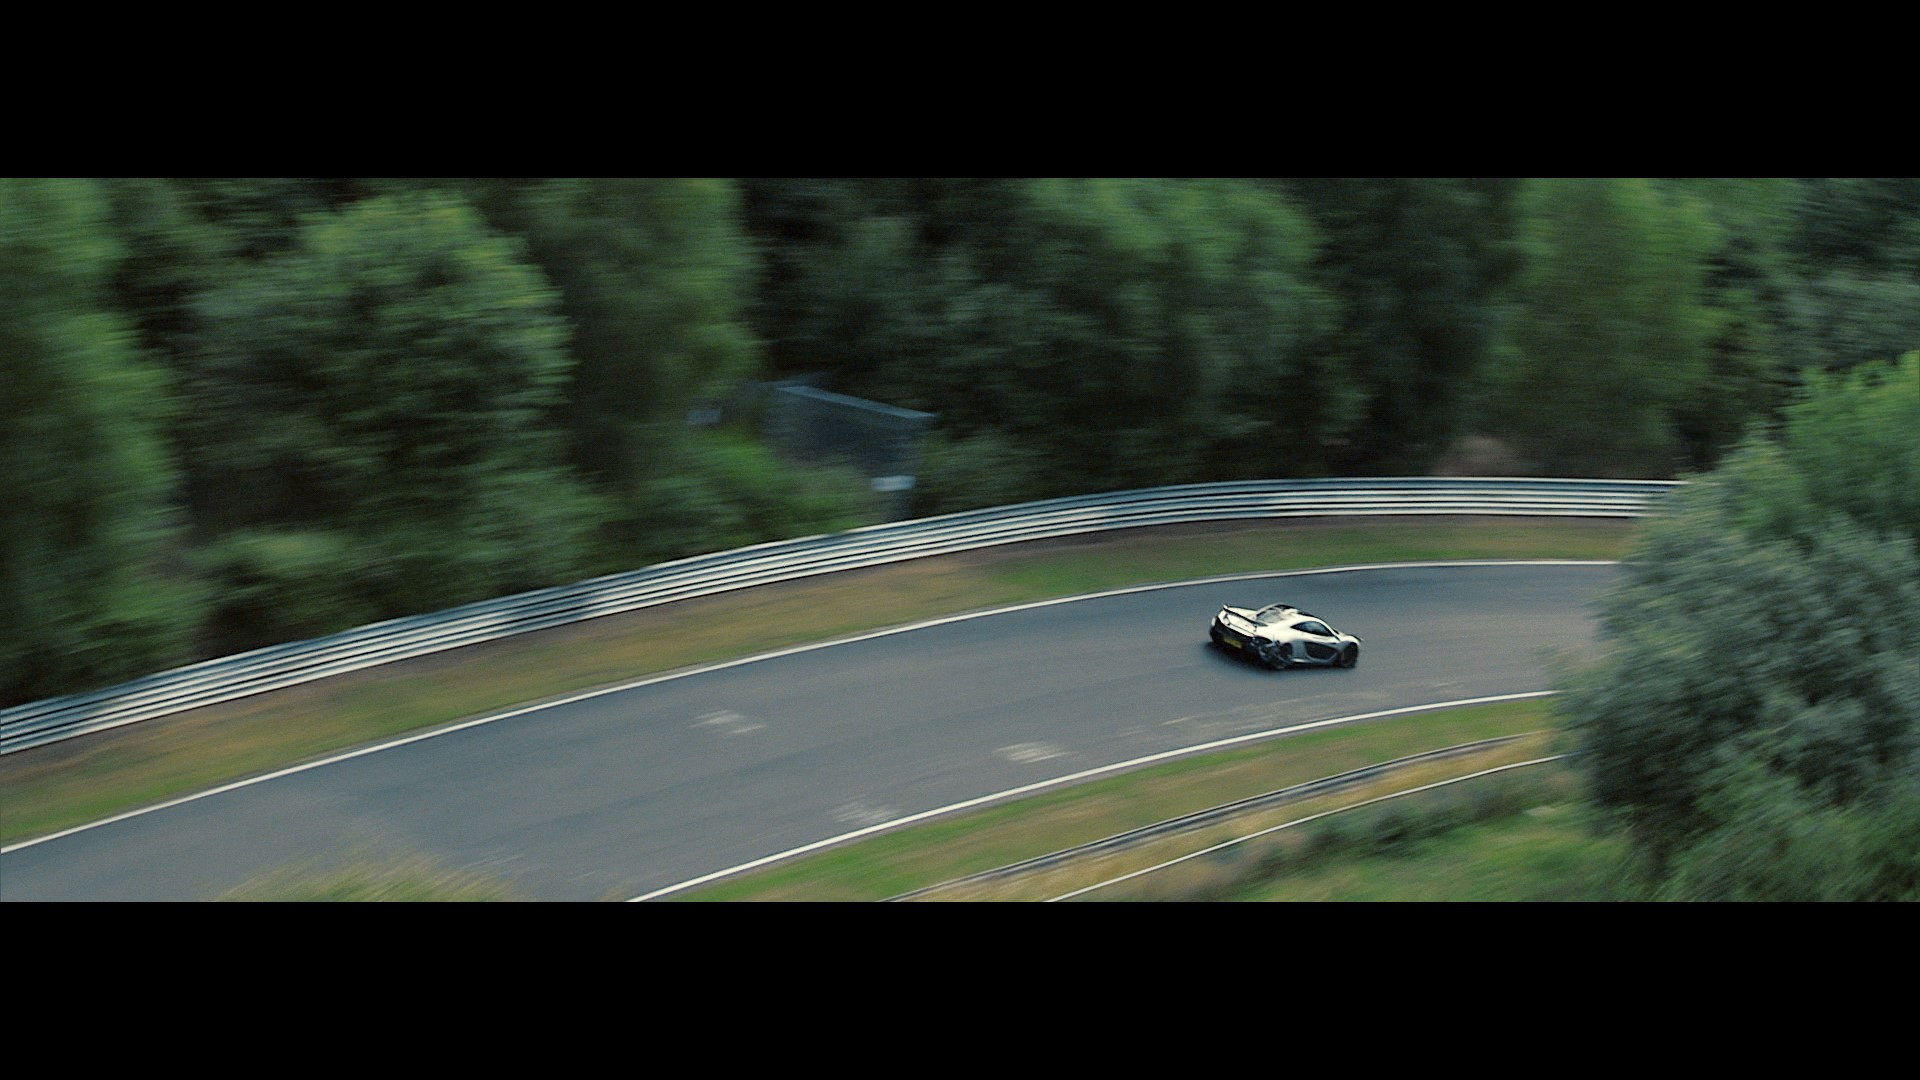 McLaren P1 laps the Nürburgring